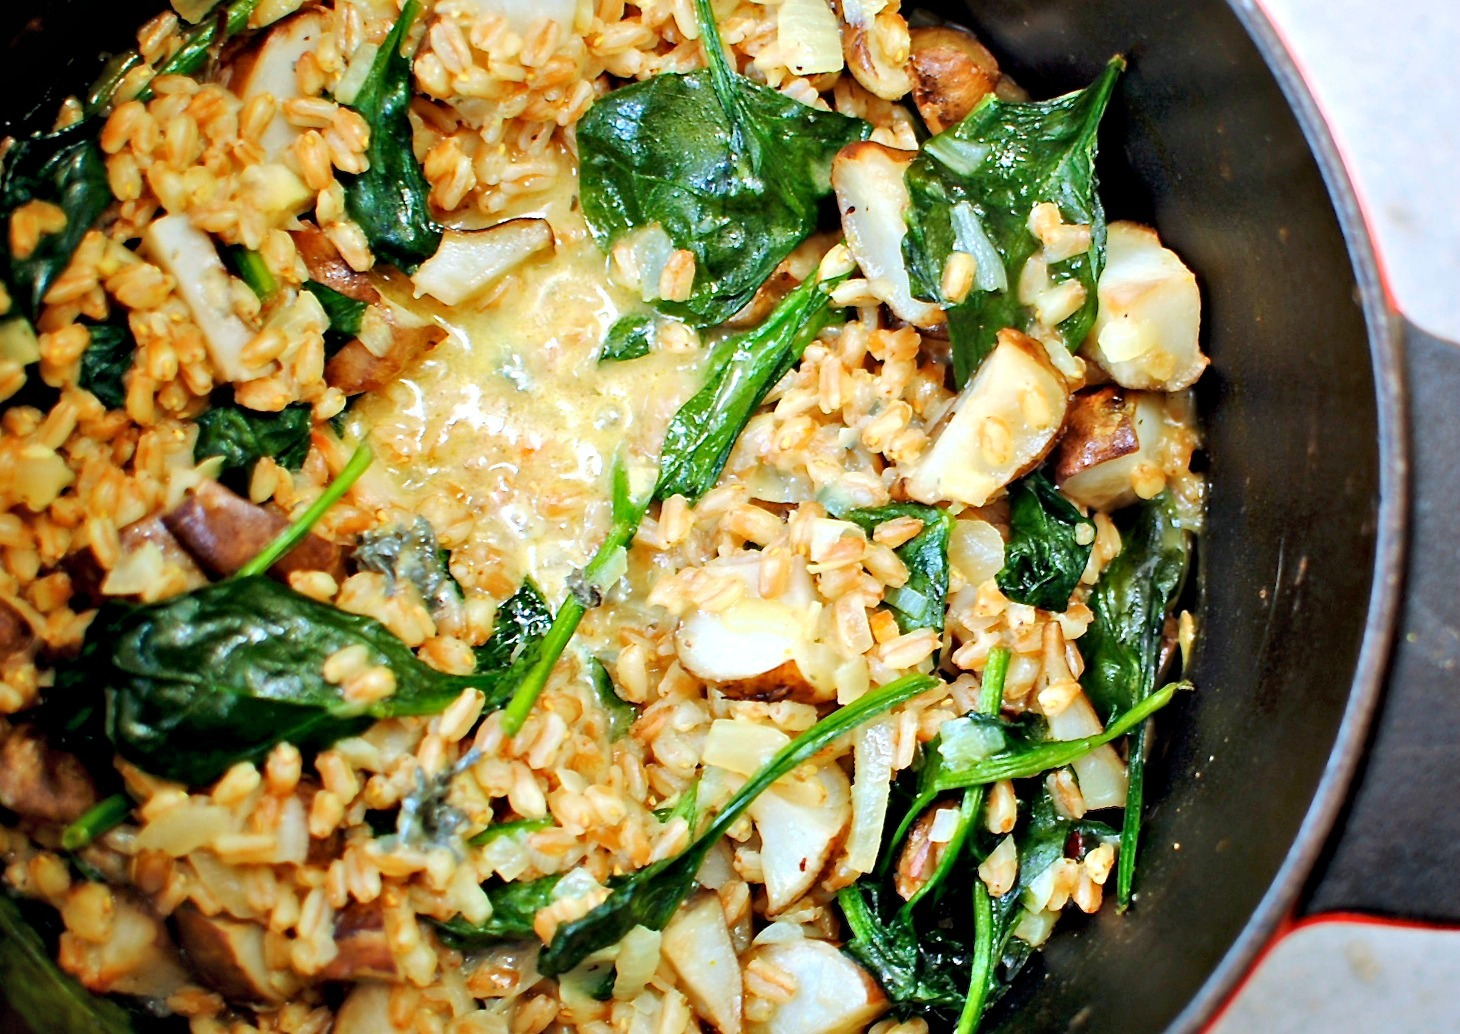 Oven-baked Jerusalem Artichoke and Spelt Risotto with Blue Cheese